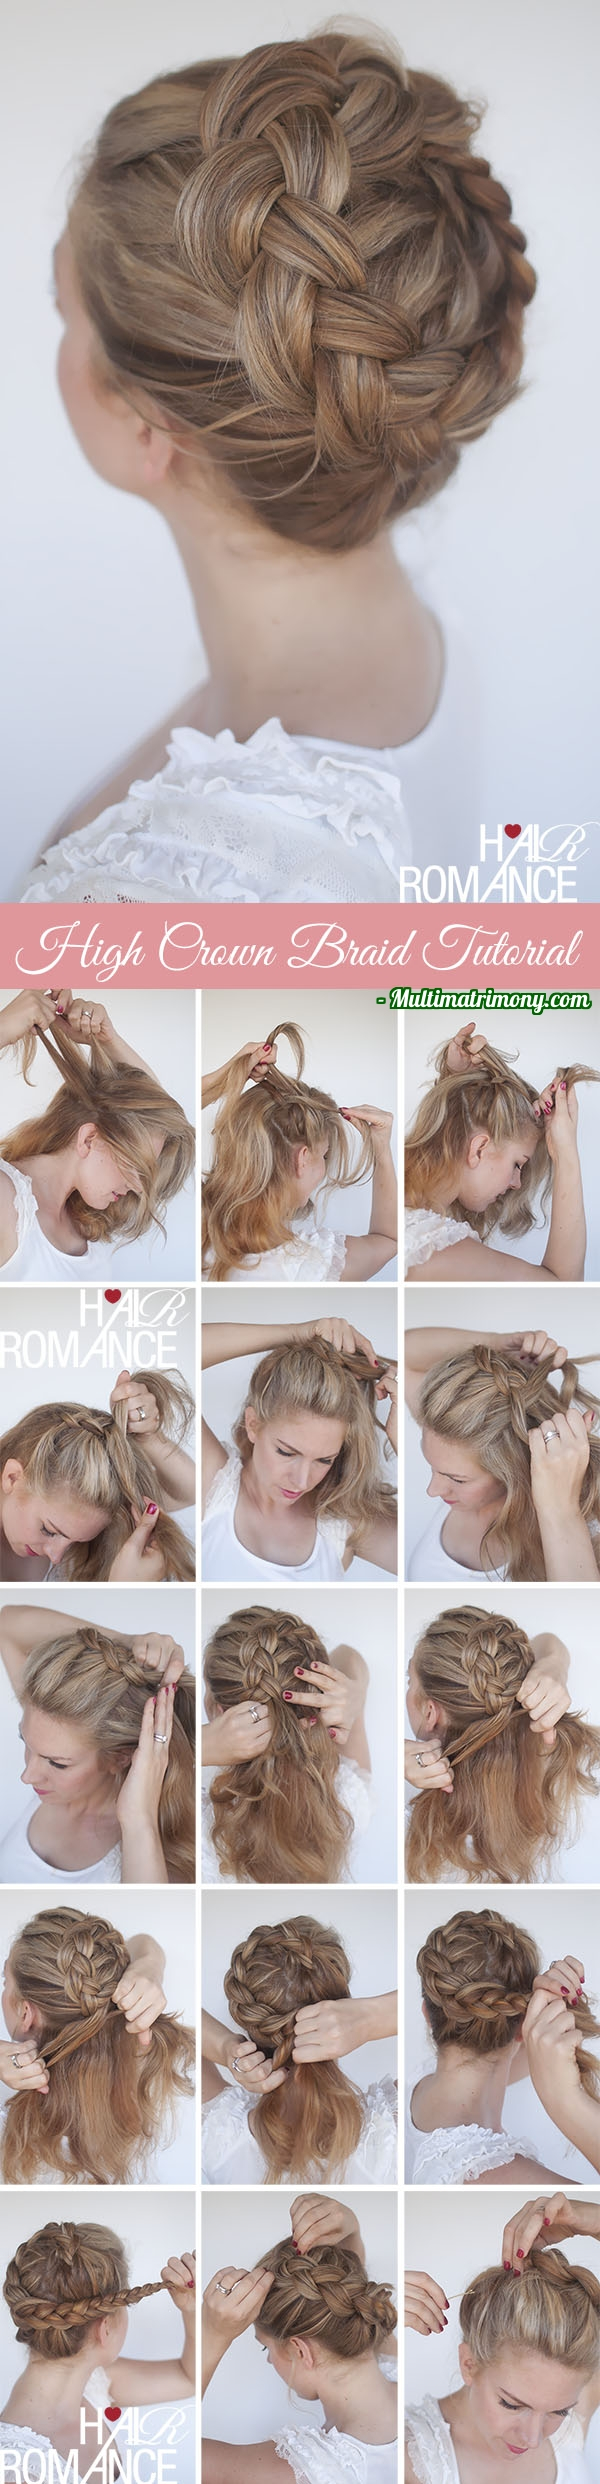 Hair-Romance-braided-crown-hairstyle-tutorial